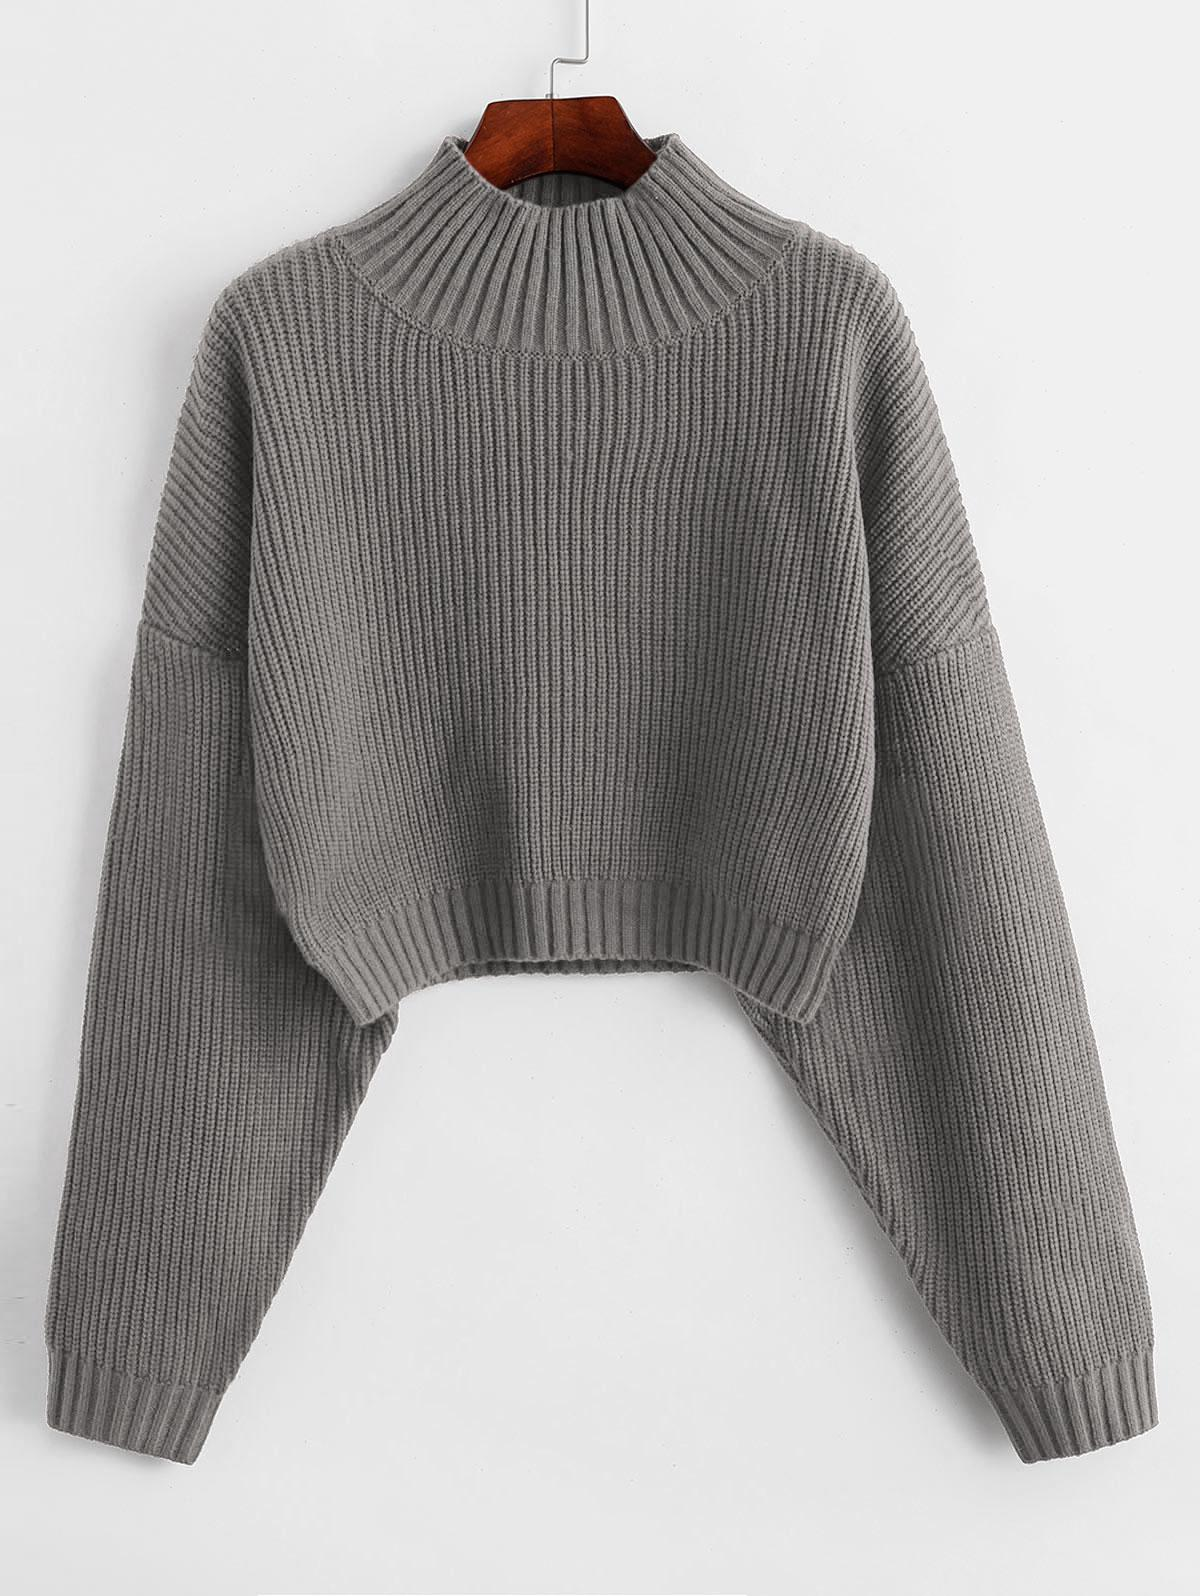 ZAFUL Drop Shoulder Mock Neck Plain Sweater, Gray